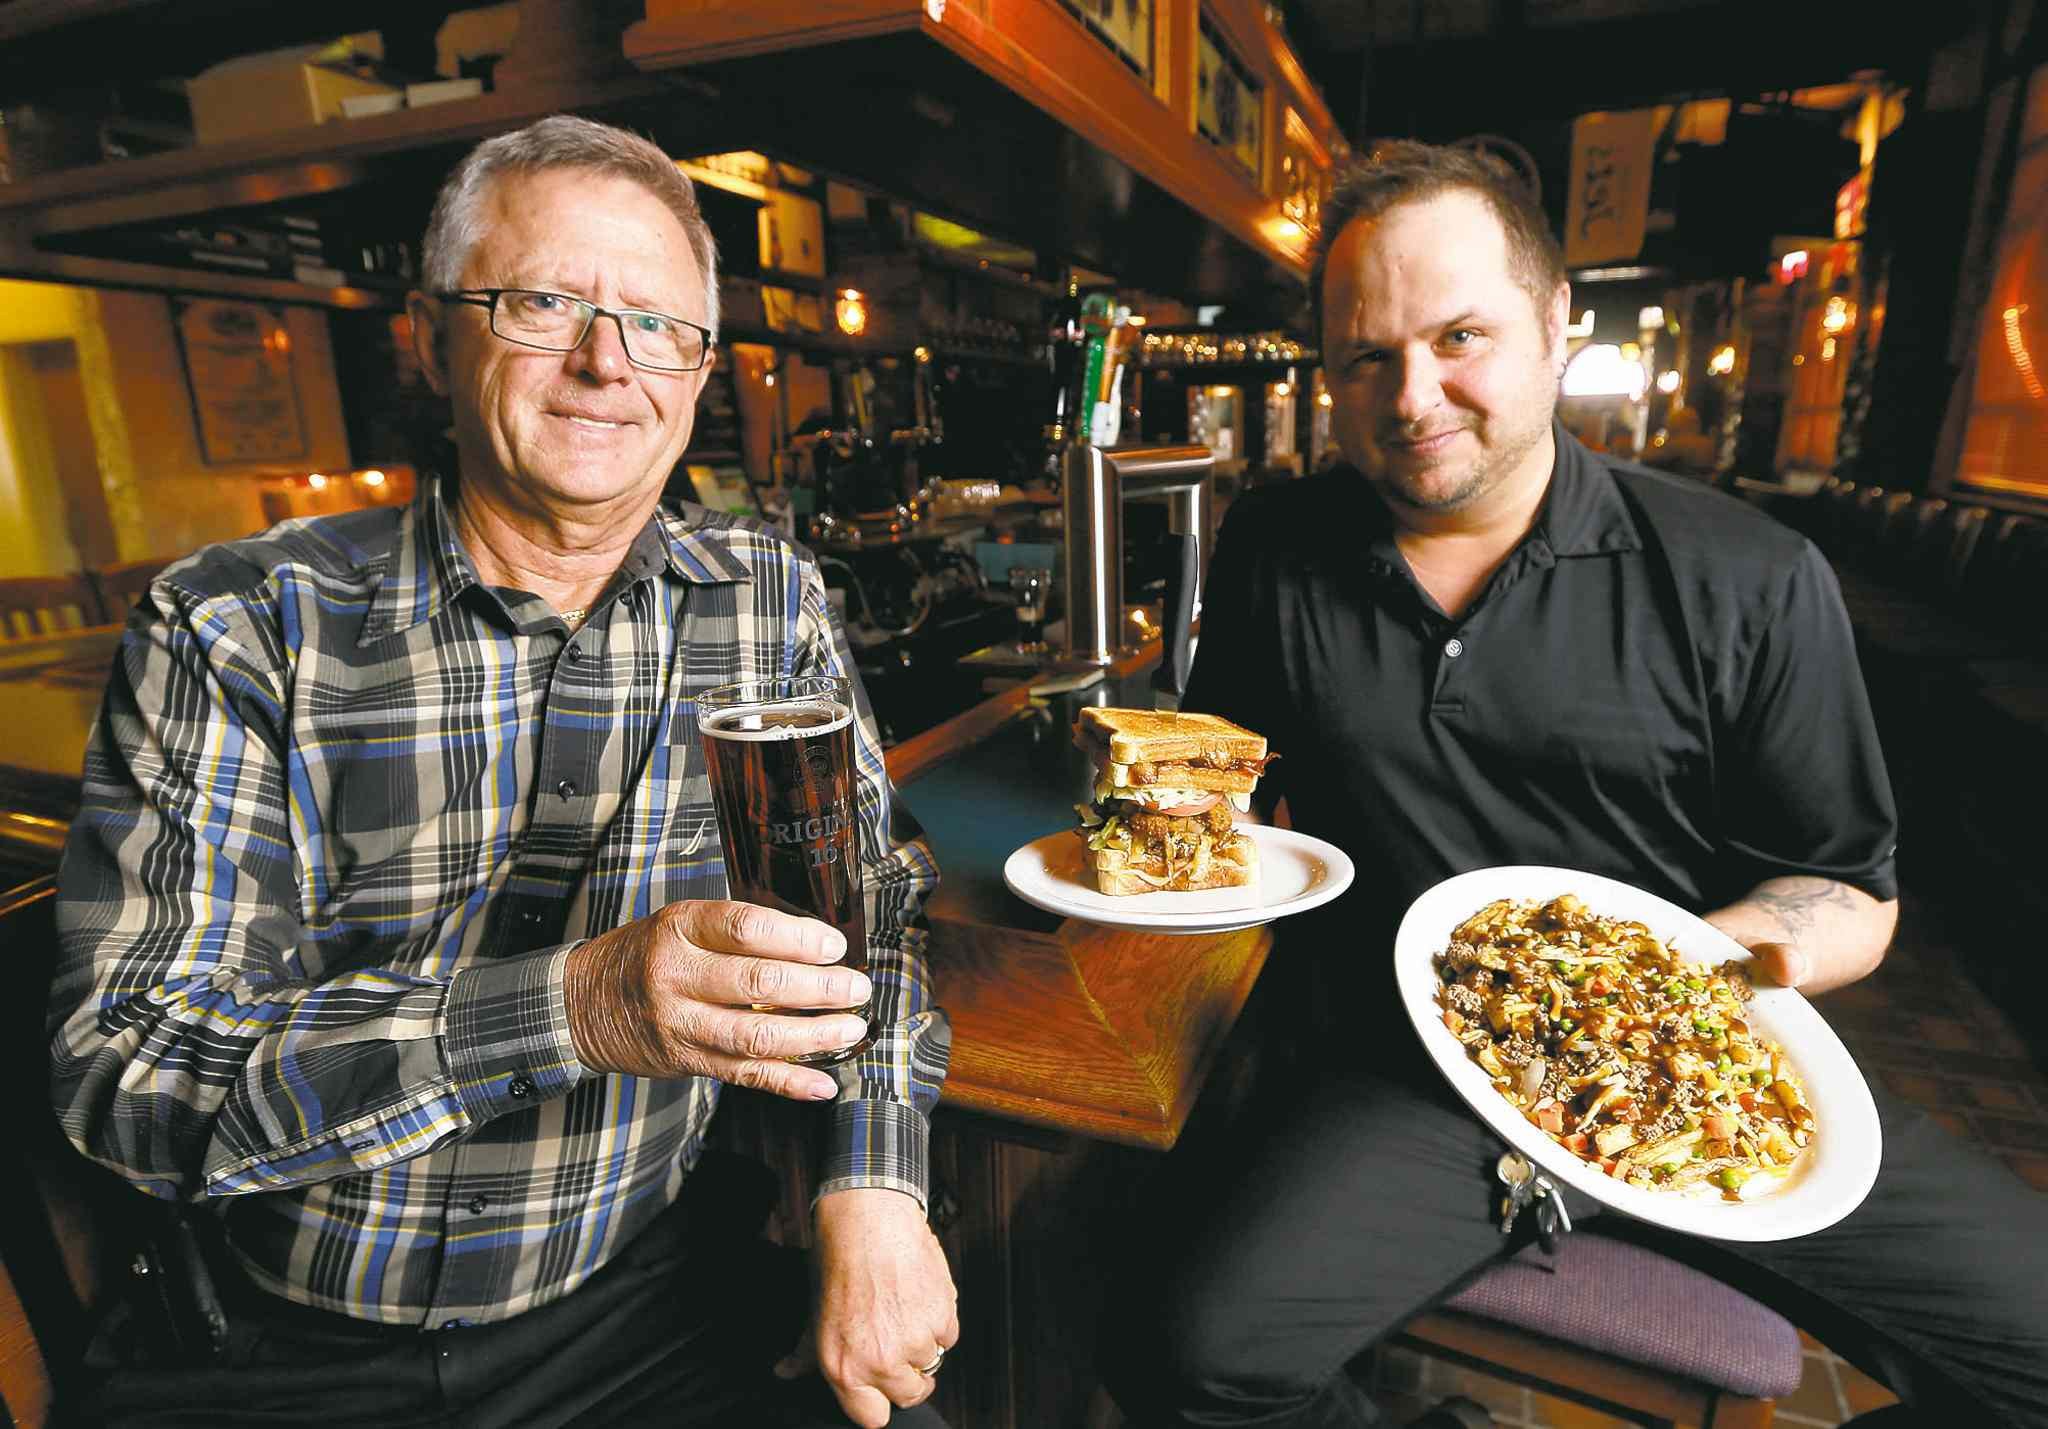 Owner Lawrence Maksymetz (left) and manager Lee Poworoznik, who is holding the shepherd's poutine and wolf hound burger, at the Fox & Hounds tavern at the St. James Hotel at 1719 Portage Ave.